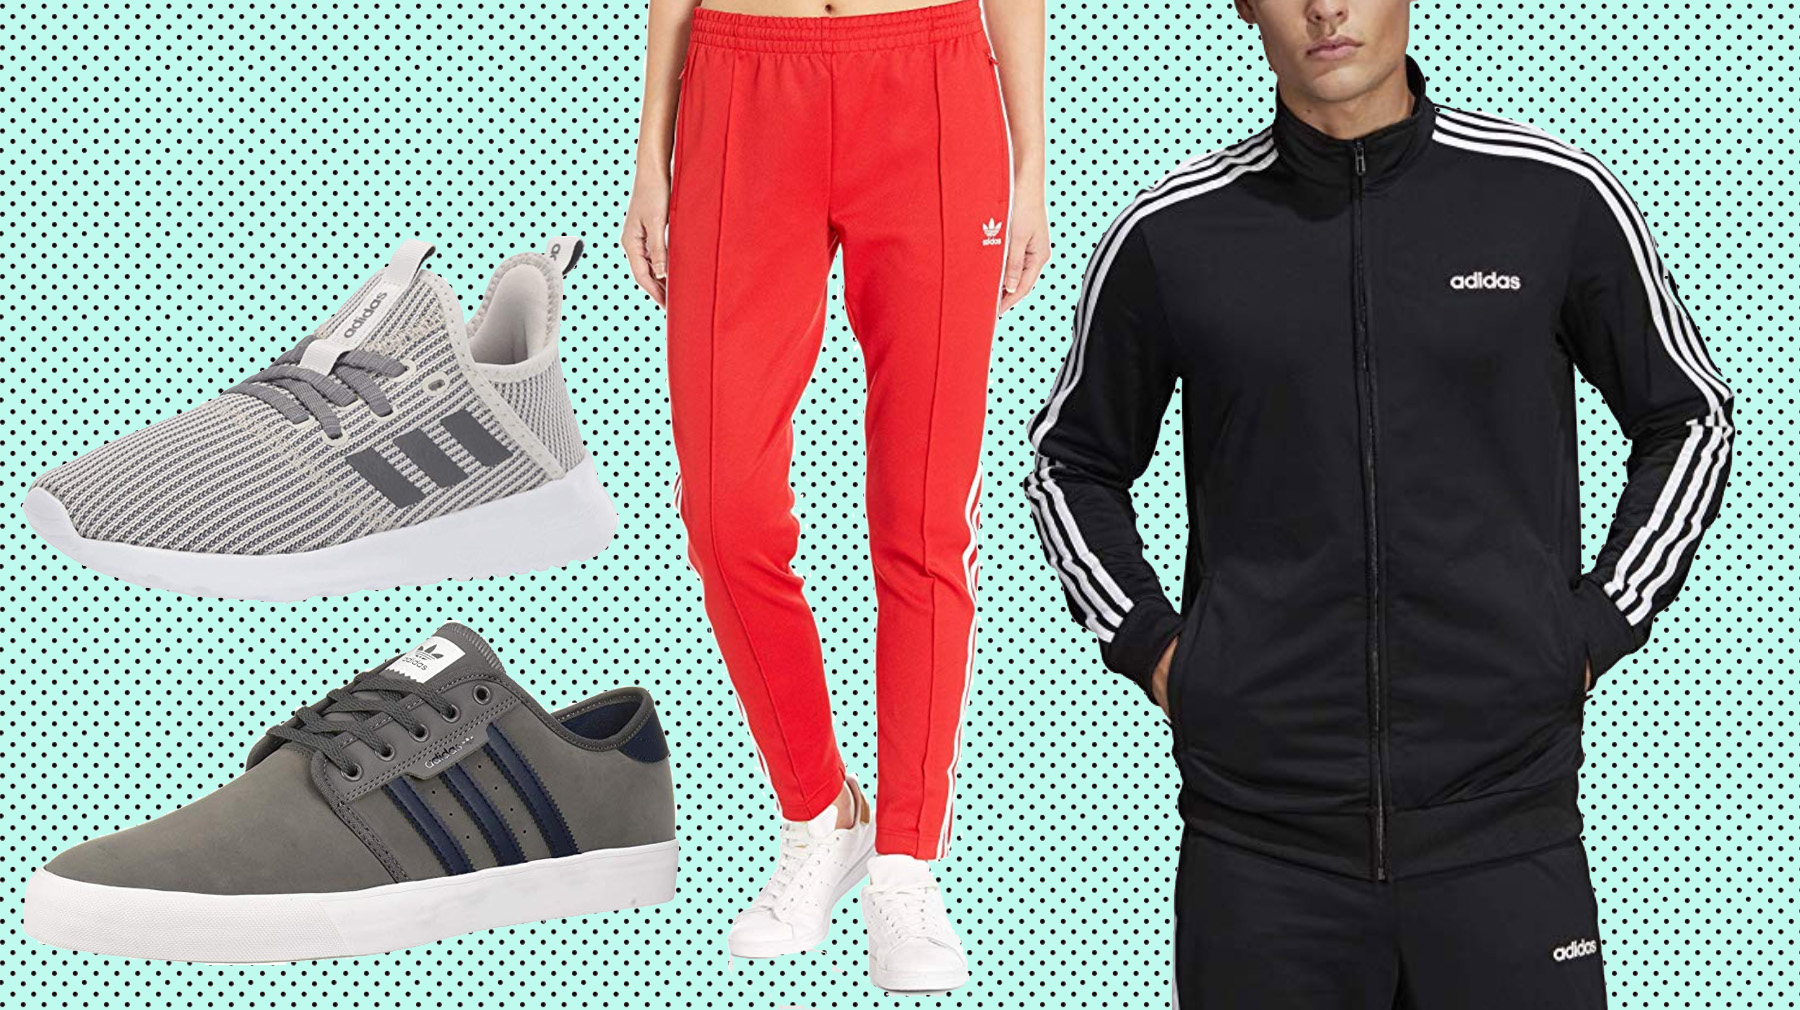 Adidas Black Friday Sale Select Items Are Discounted At Amazon Cnn Underscored